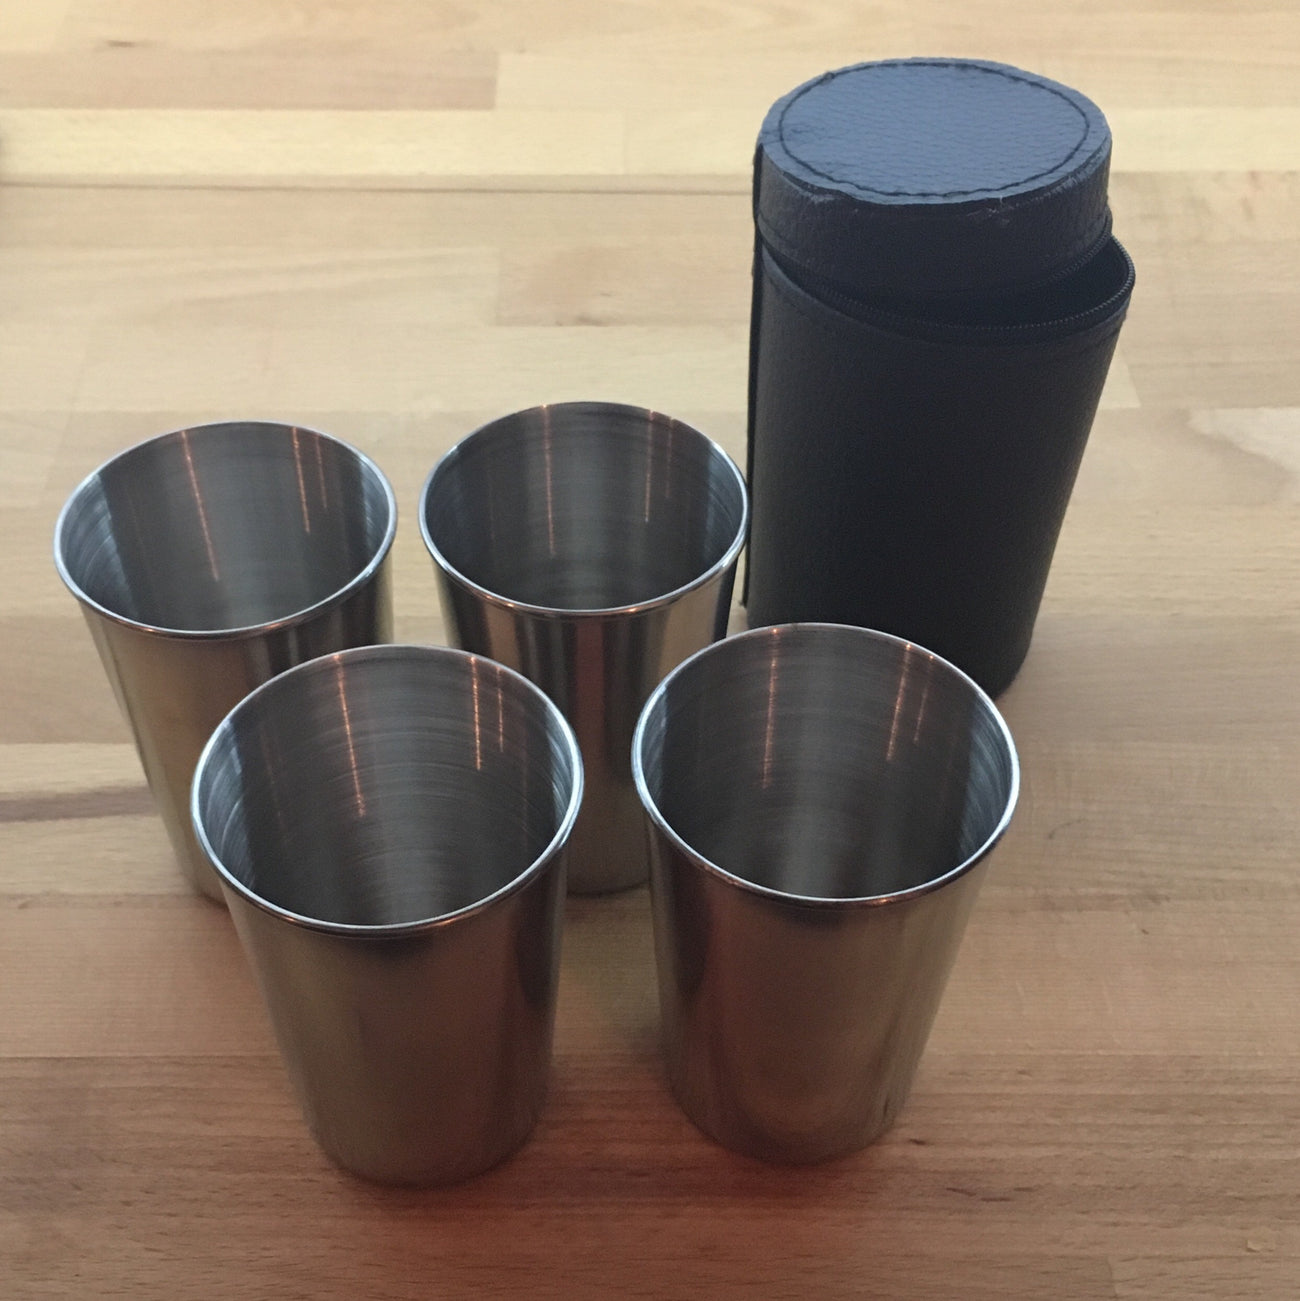 180 ml stainless steel cups x4